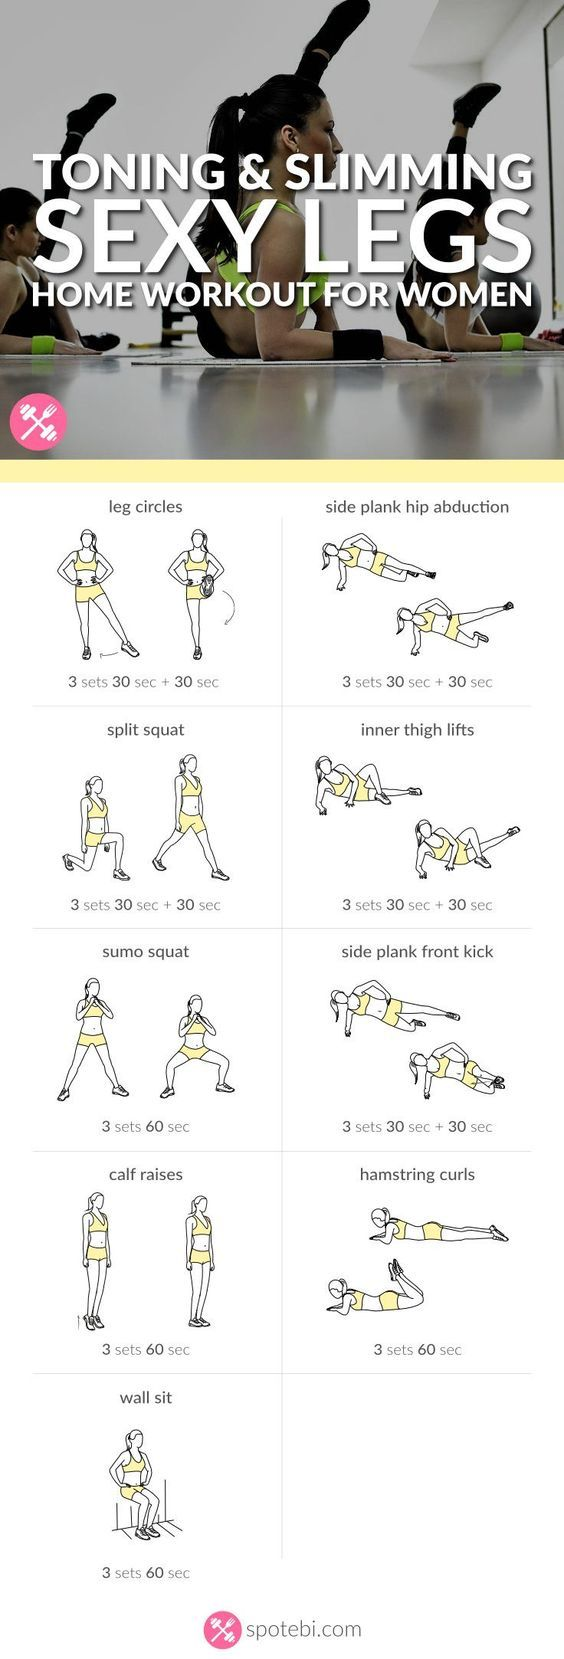 Sexy Legs Workout For Women   Toning & Slimming Exercises - Spotebi